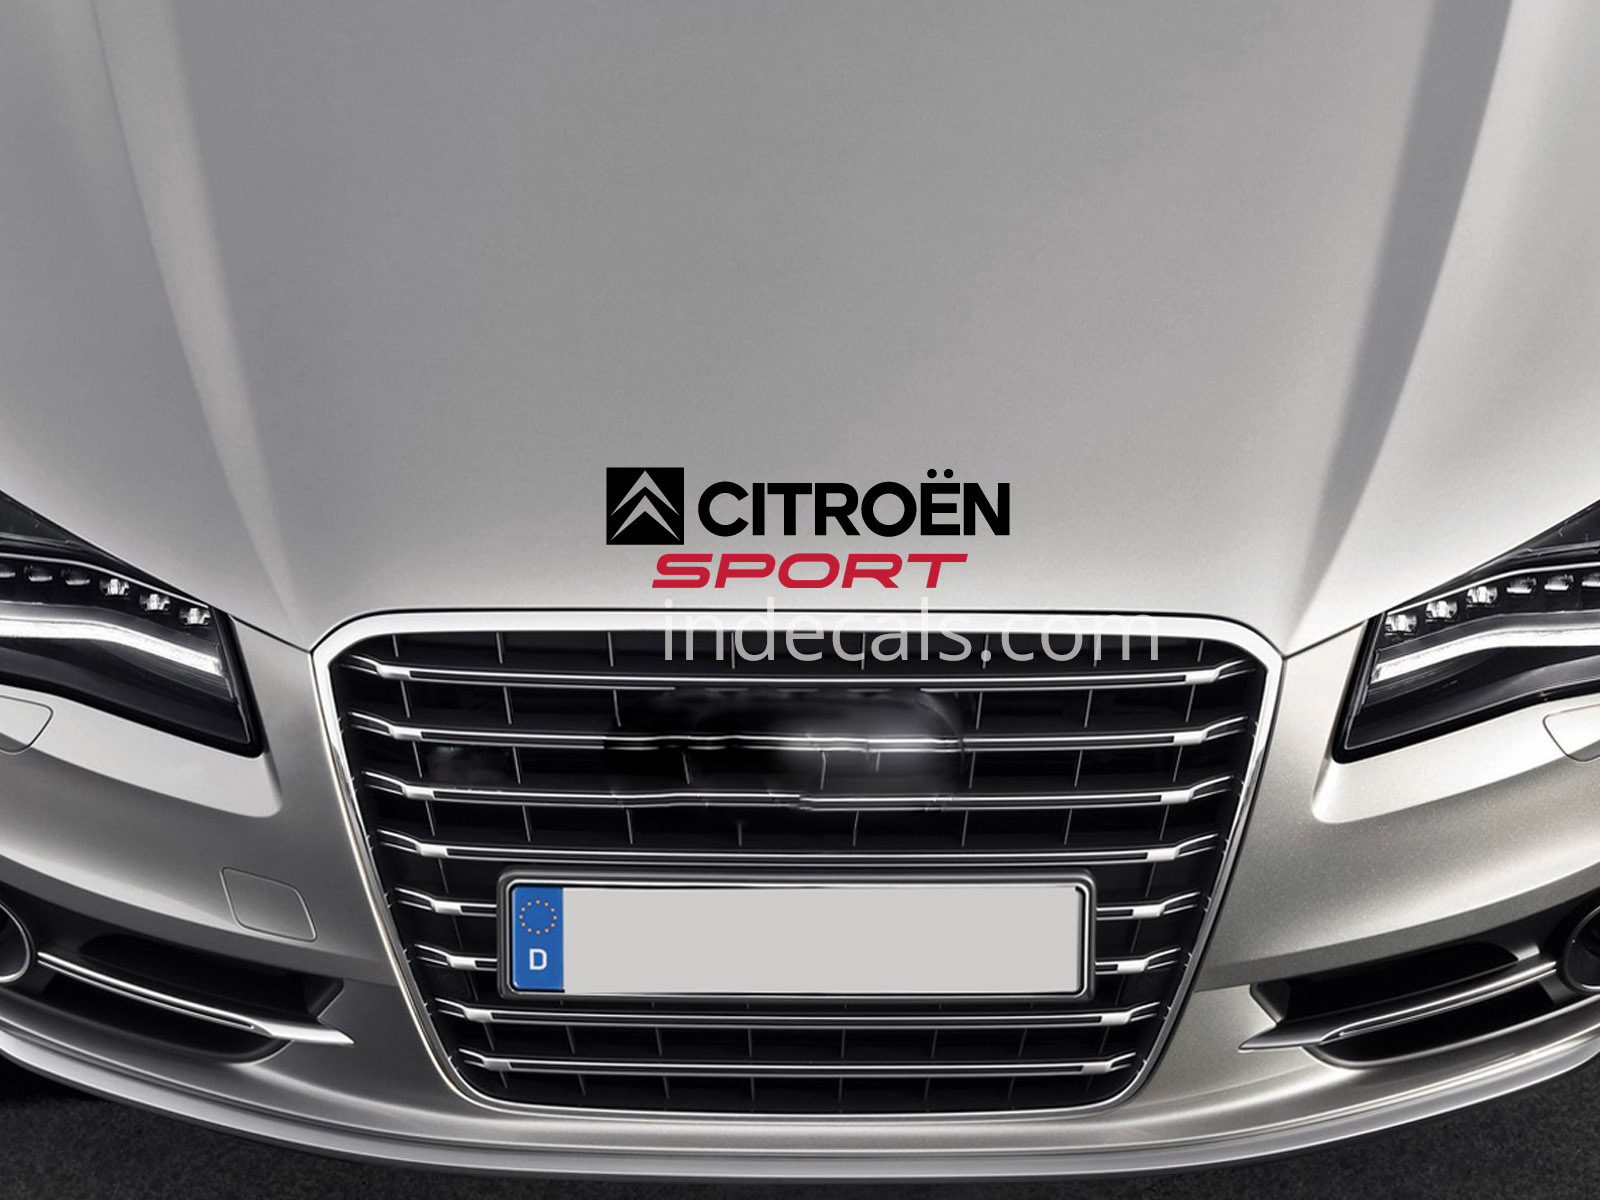 1 x Citroen Sport Sticker for Bonnet - Black & Red